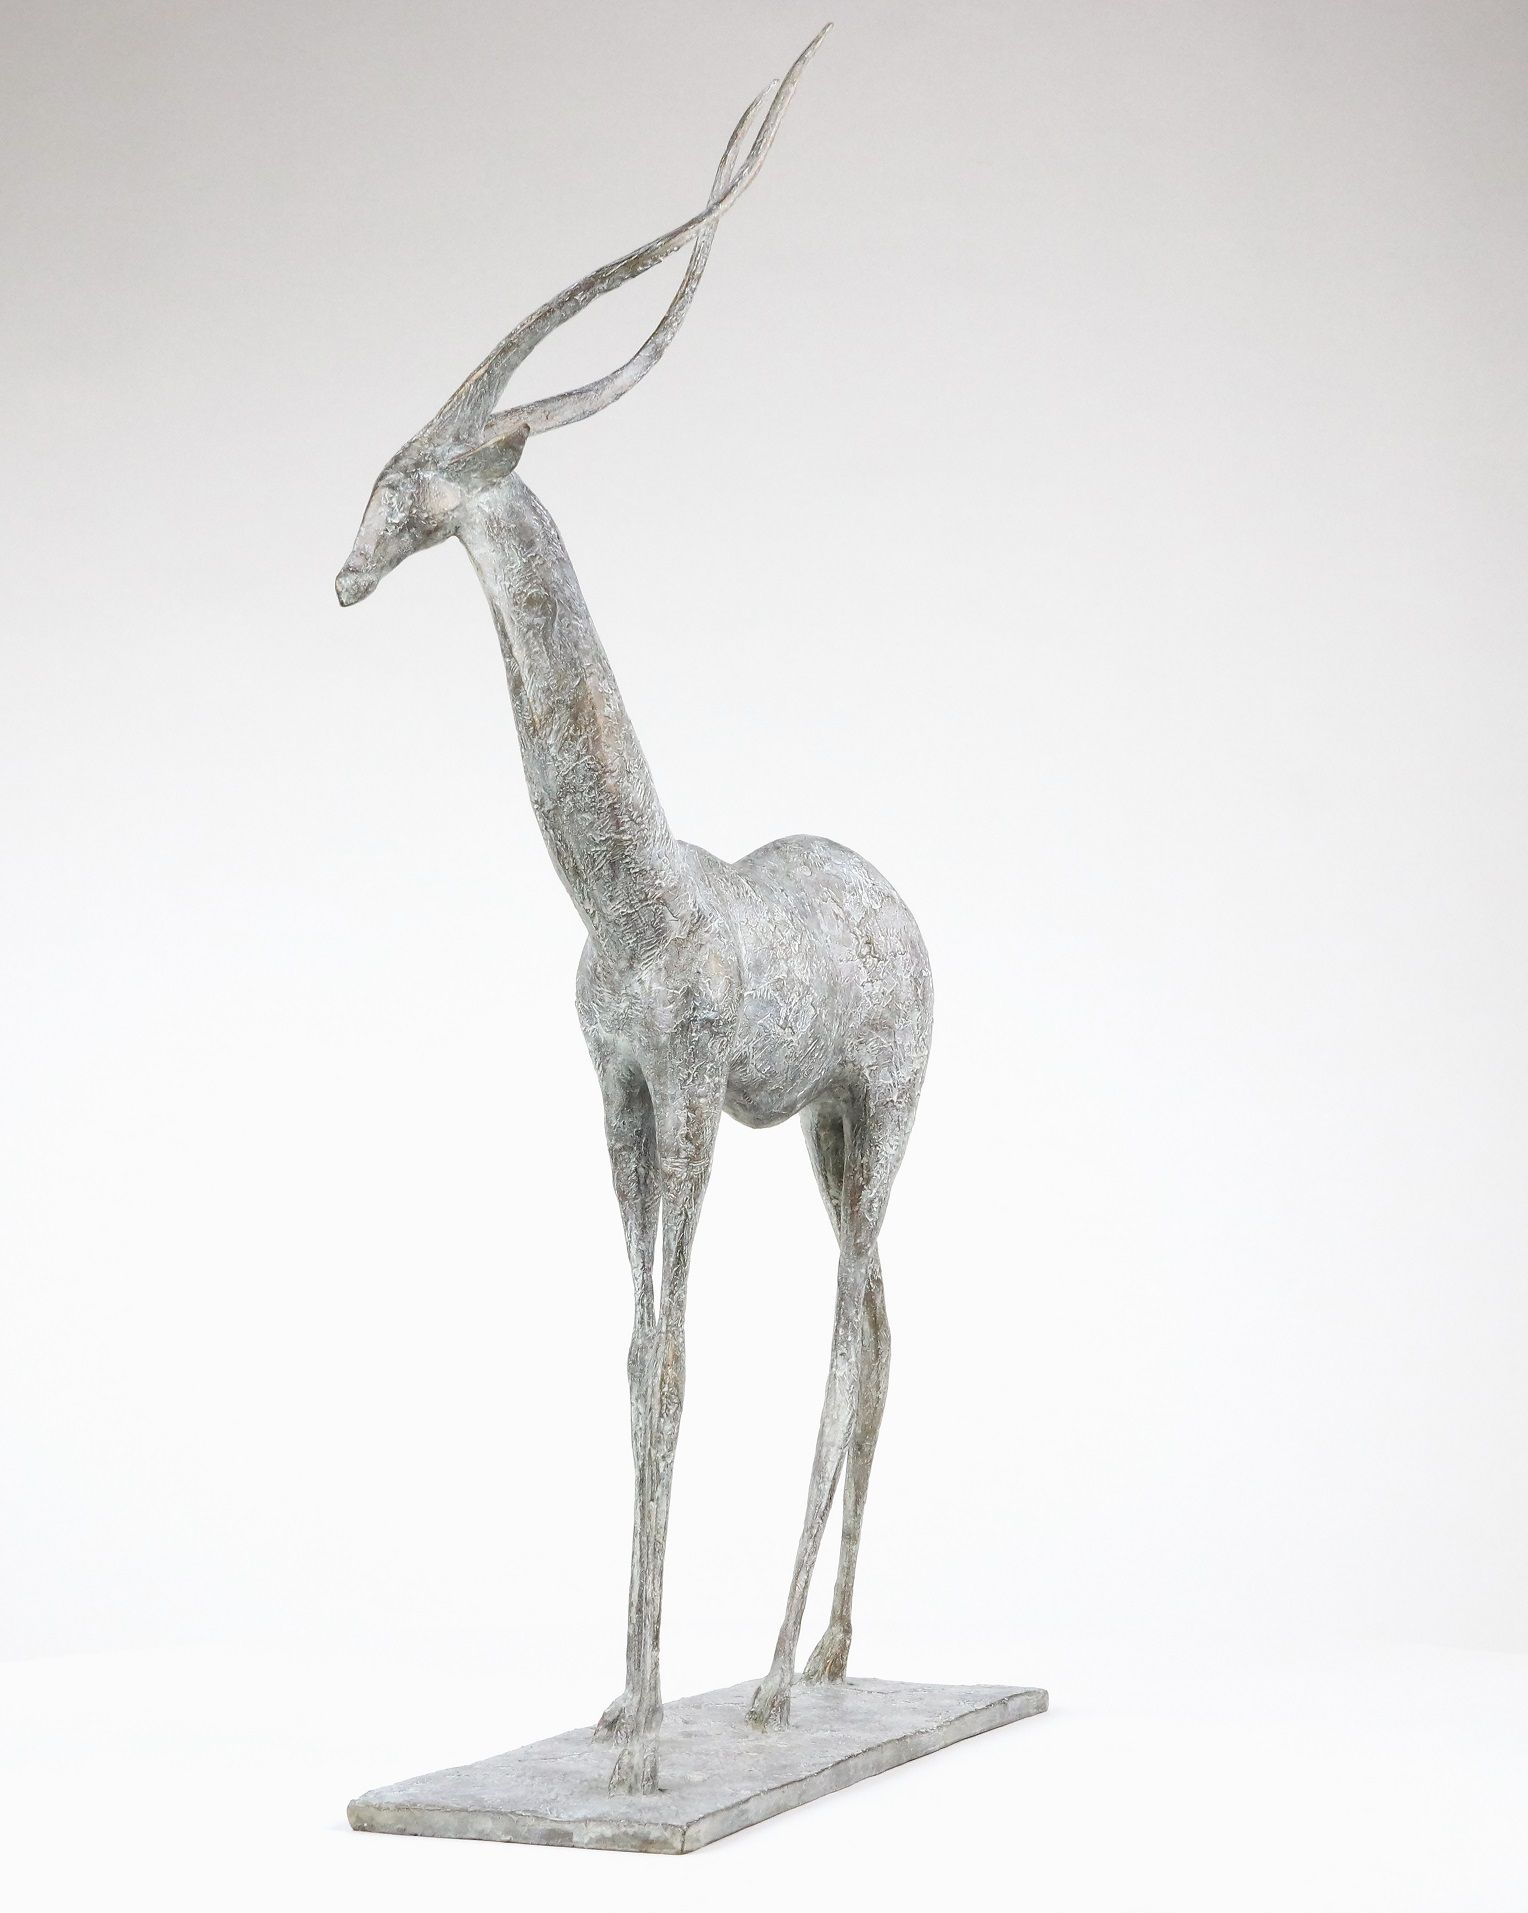 Gazelle I, Pierre Yermia,Sculpture, detail 4